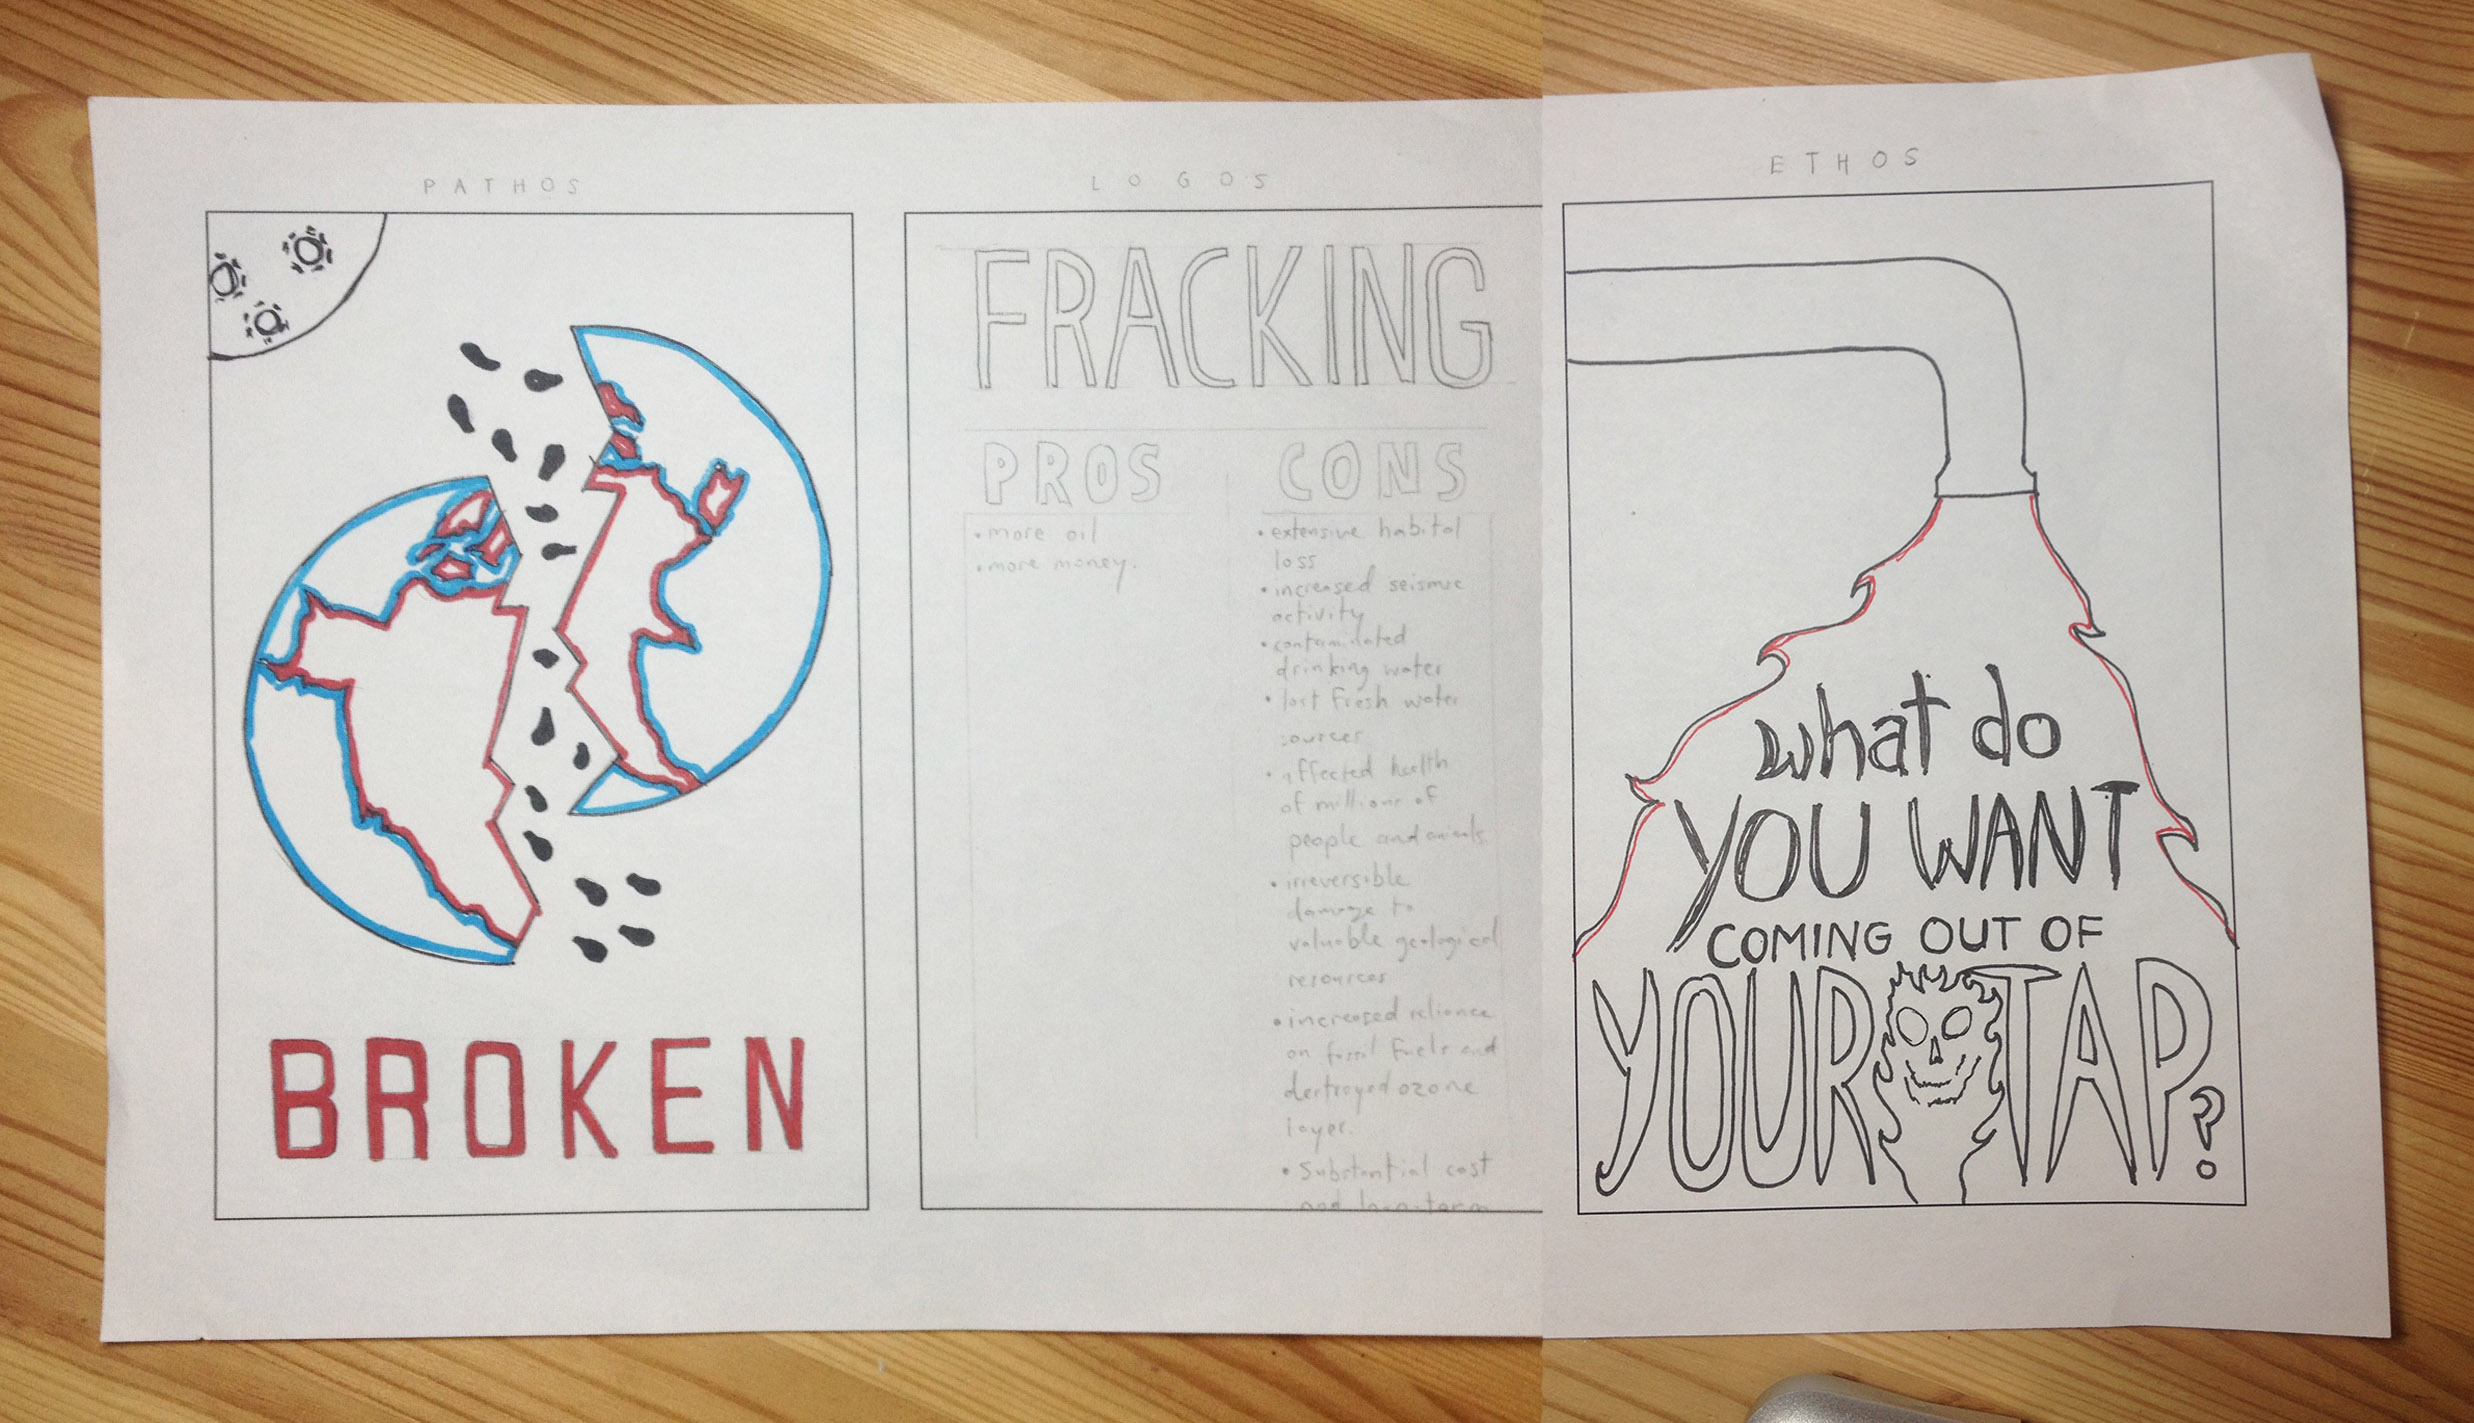 anti fracking poster the design process forrest media after playing around hand drawn ideas i decided to move things onto the computer and try a few more ideas the methods of logos and ethos were